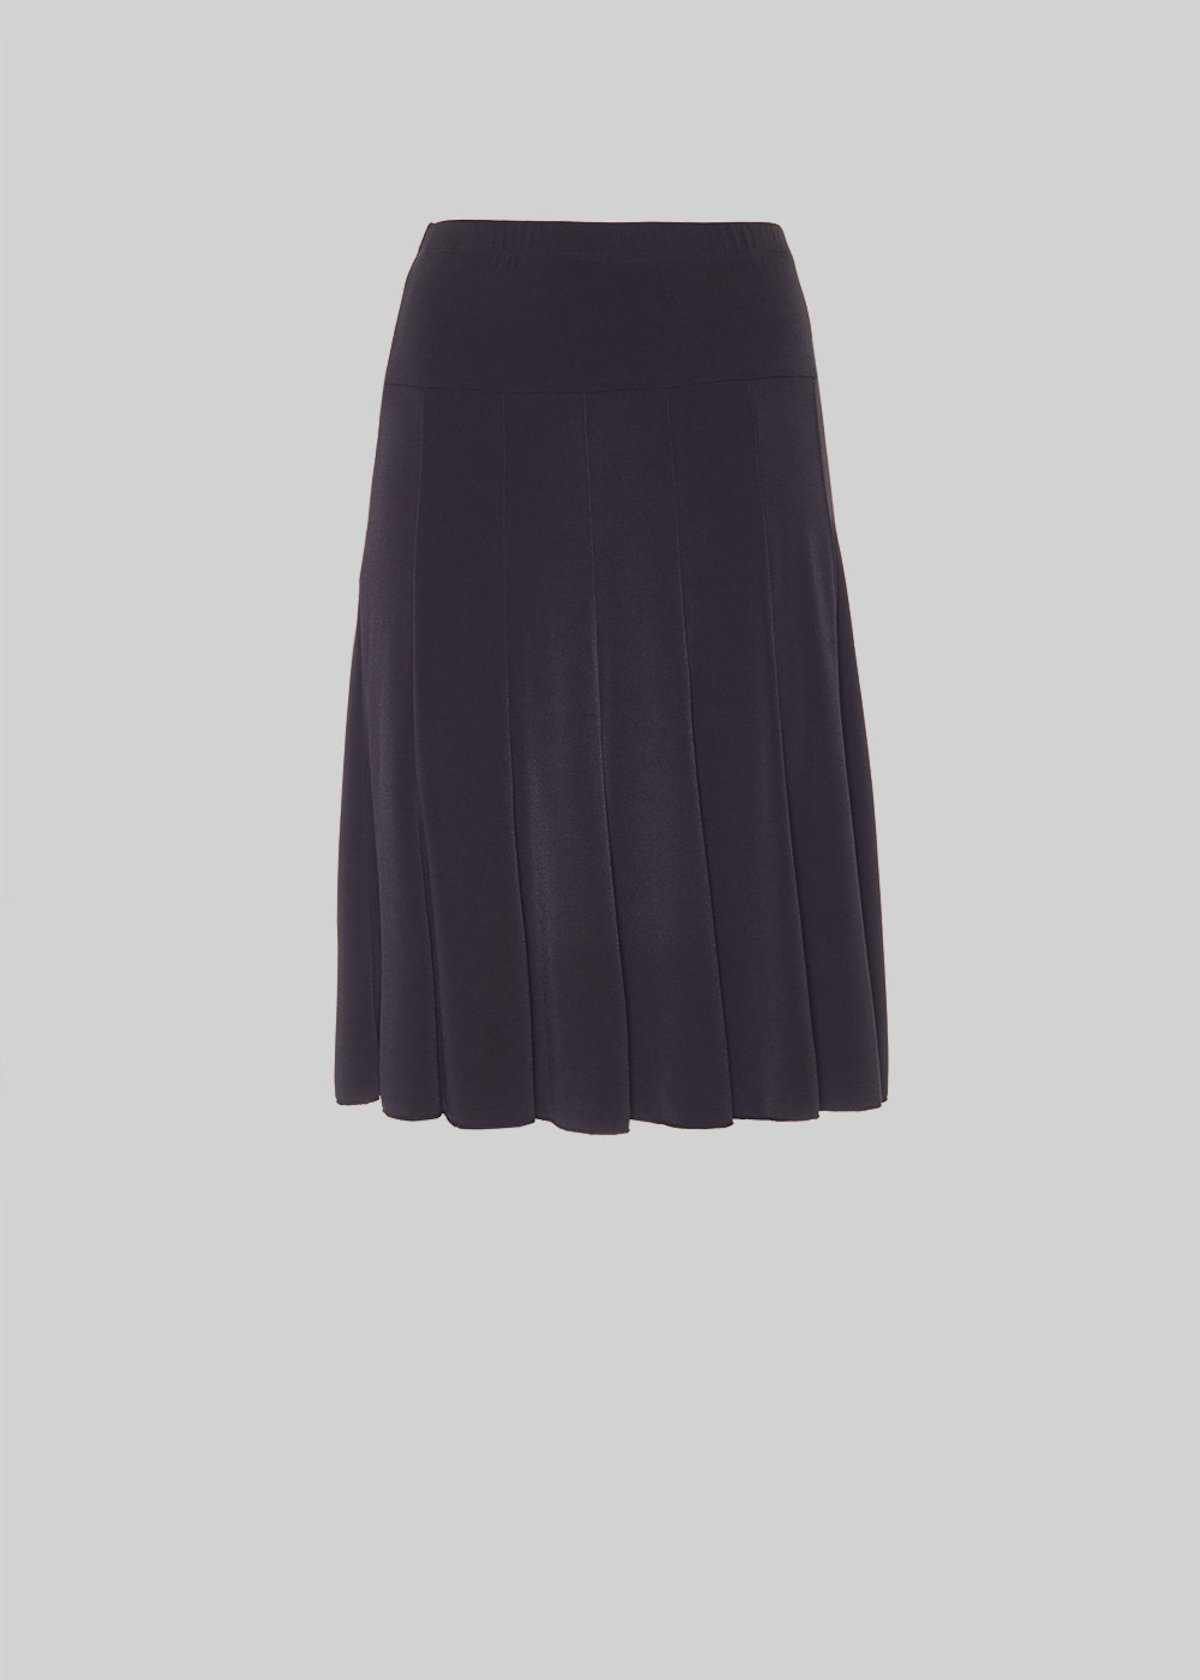 Goya skirt with jersey godets - Black